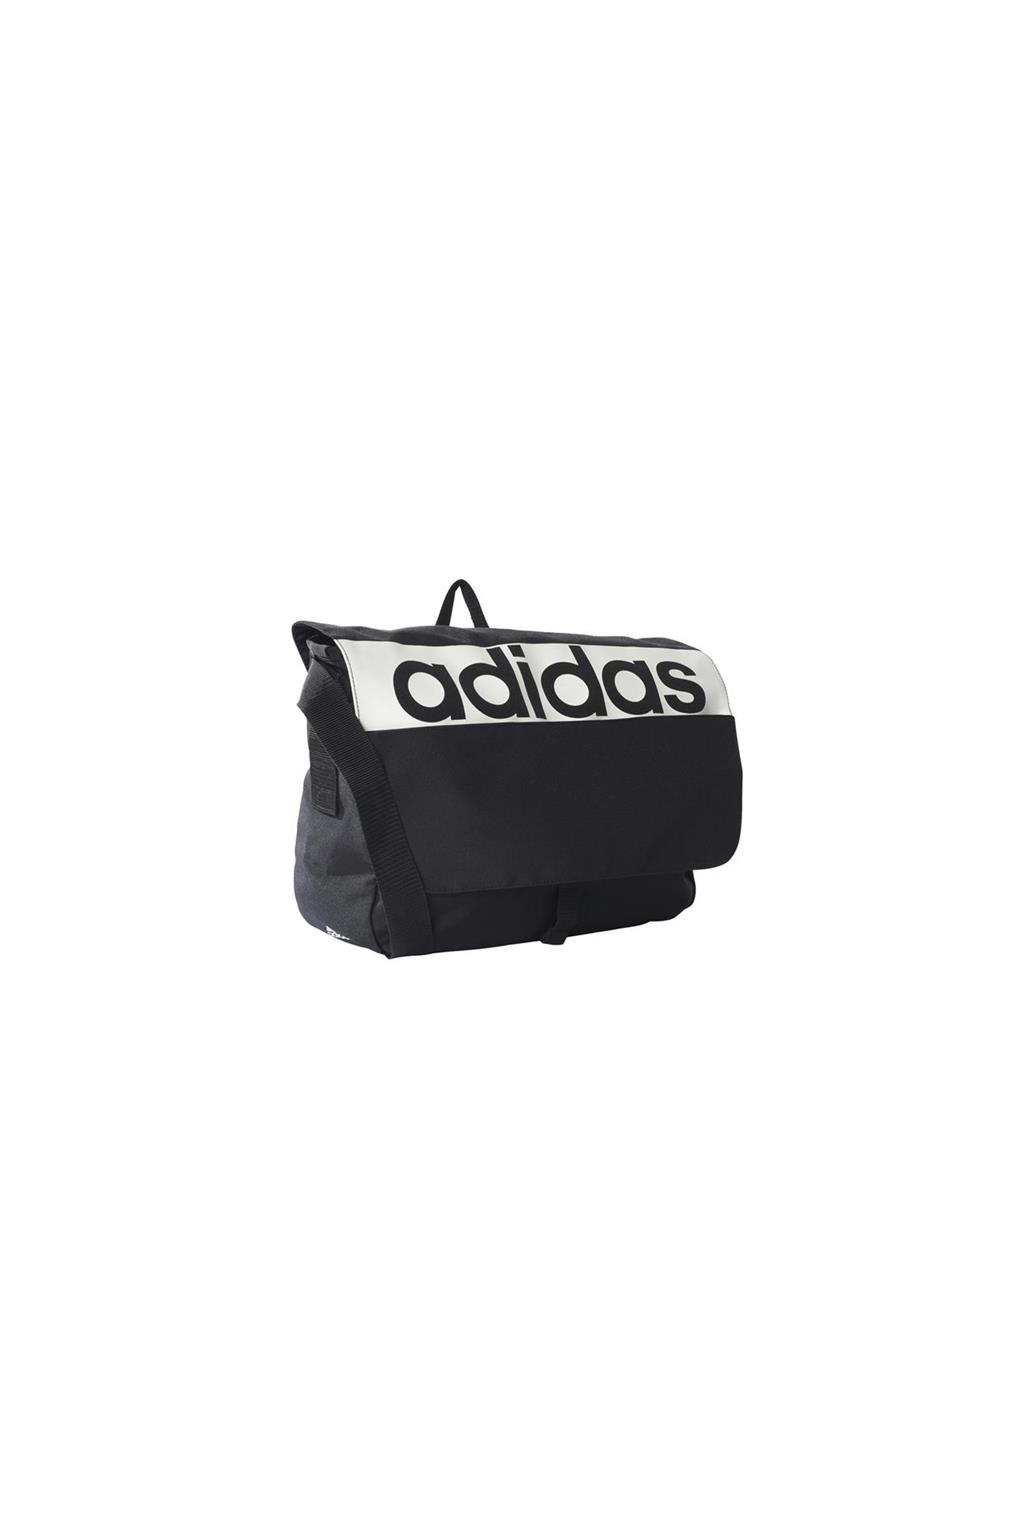 torba adidas linear performance messener czarna s9